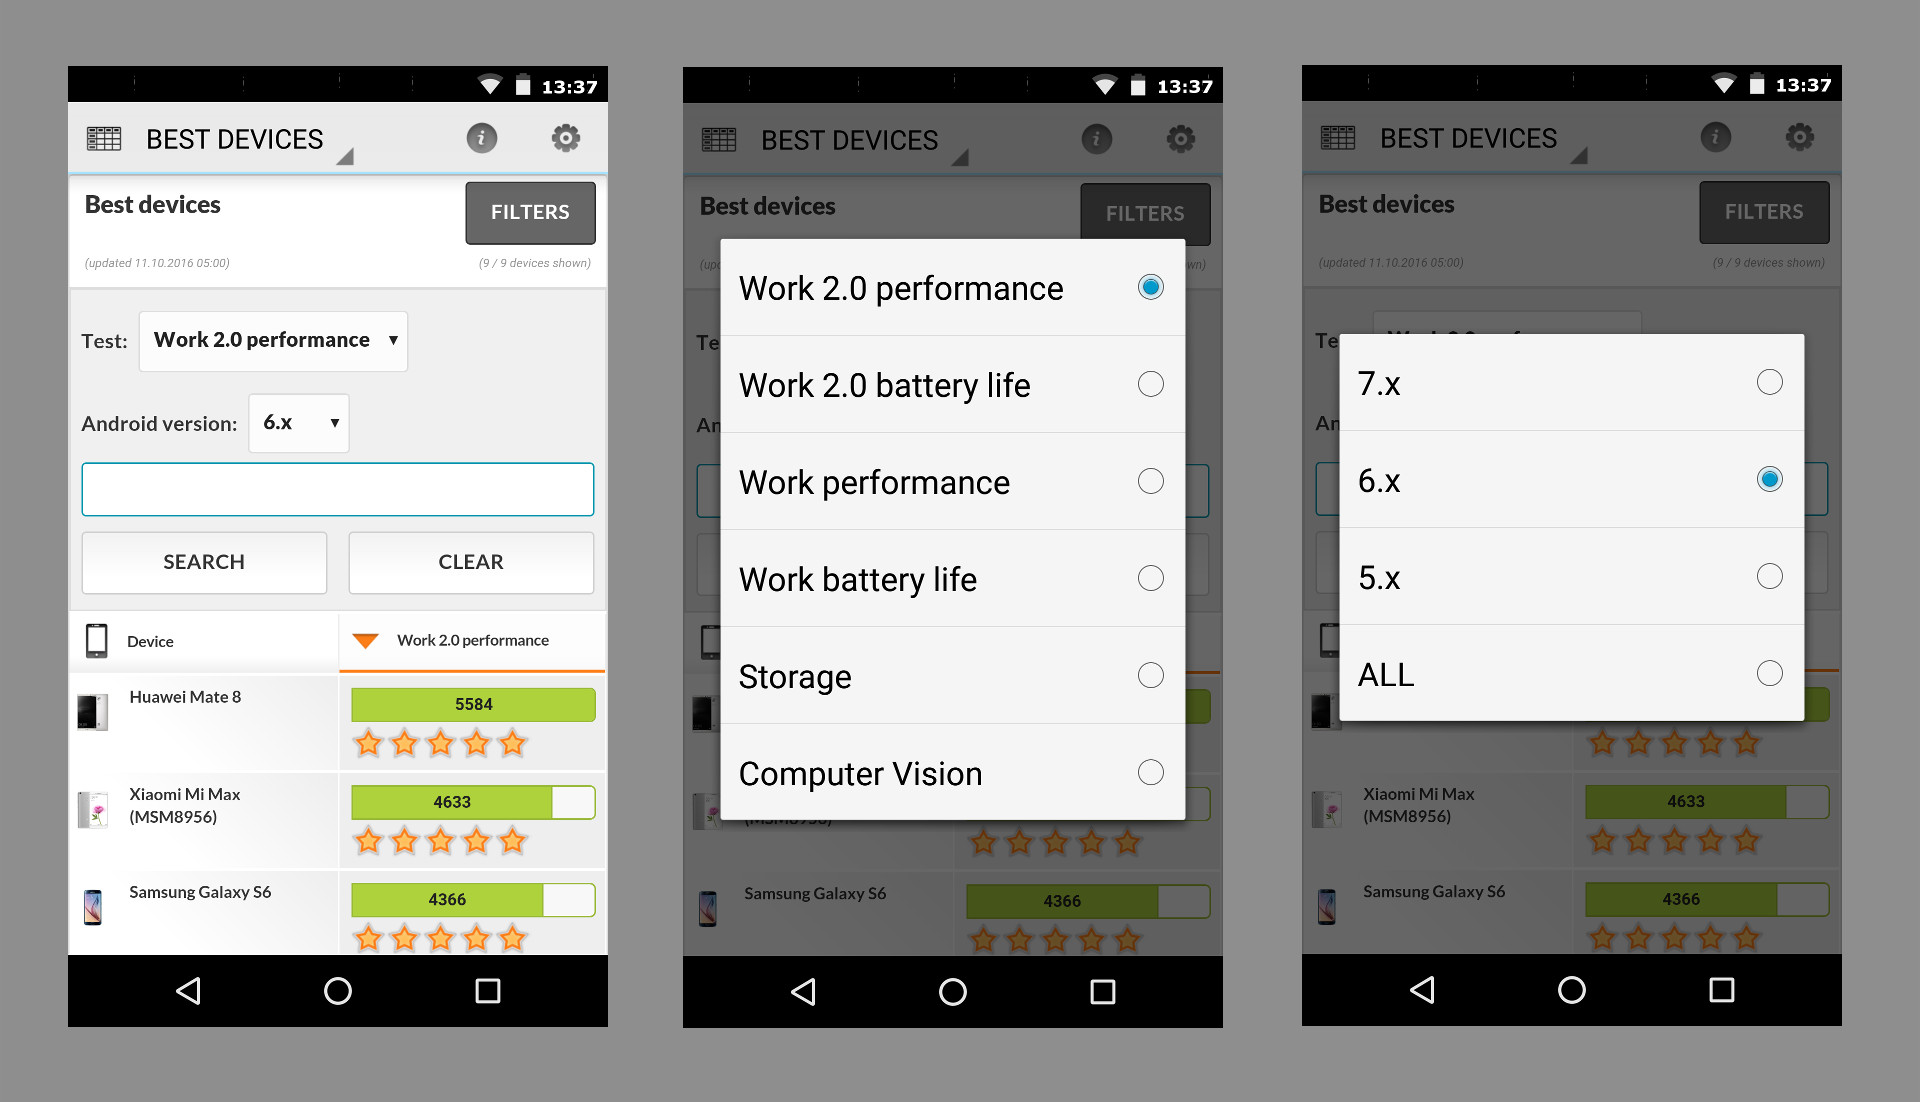 PCMark for Android performance comparison by Android OS version in the Best Devices List